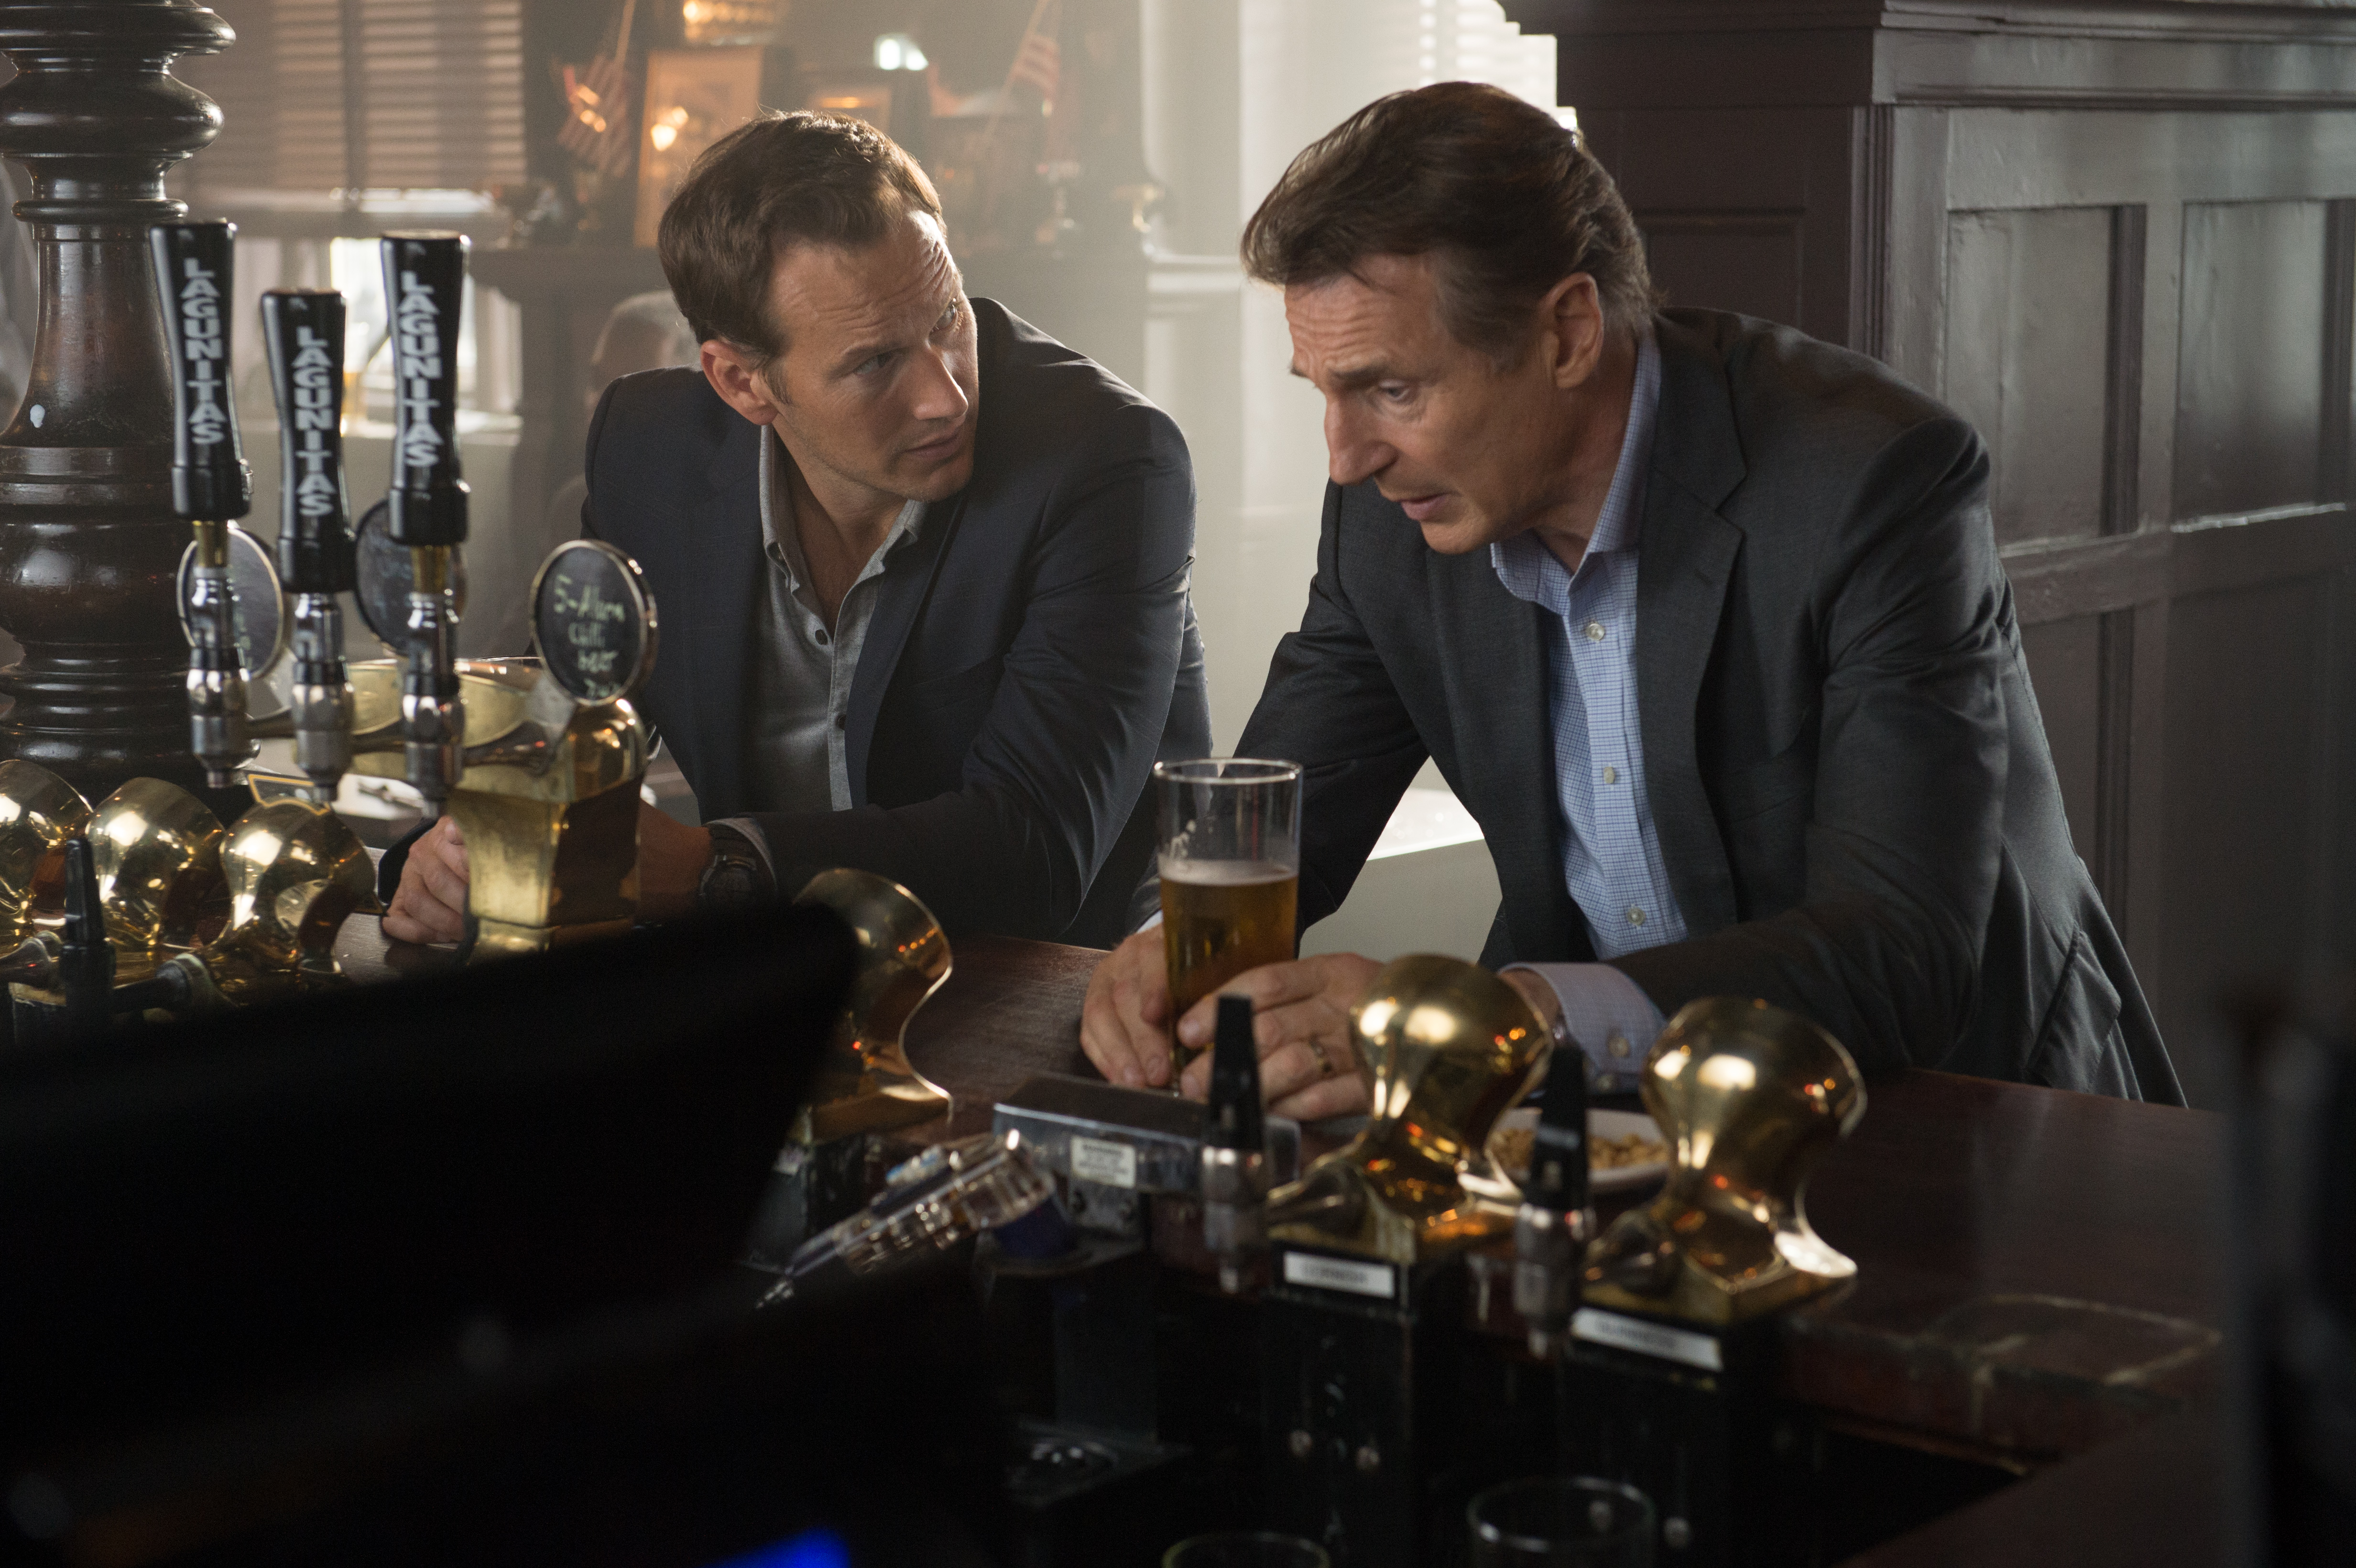 Liam Neeson and Patrick Wilson in The Commuter (2018)